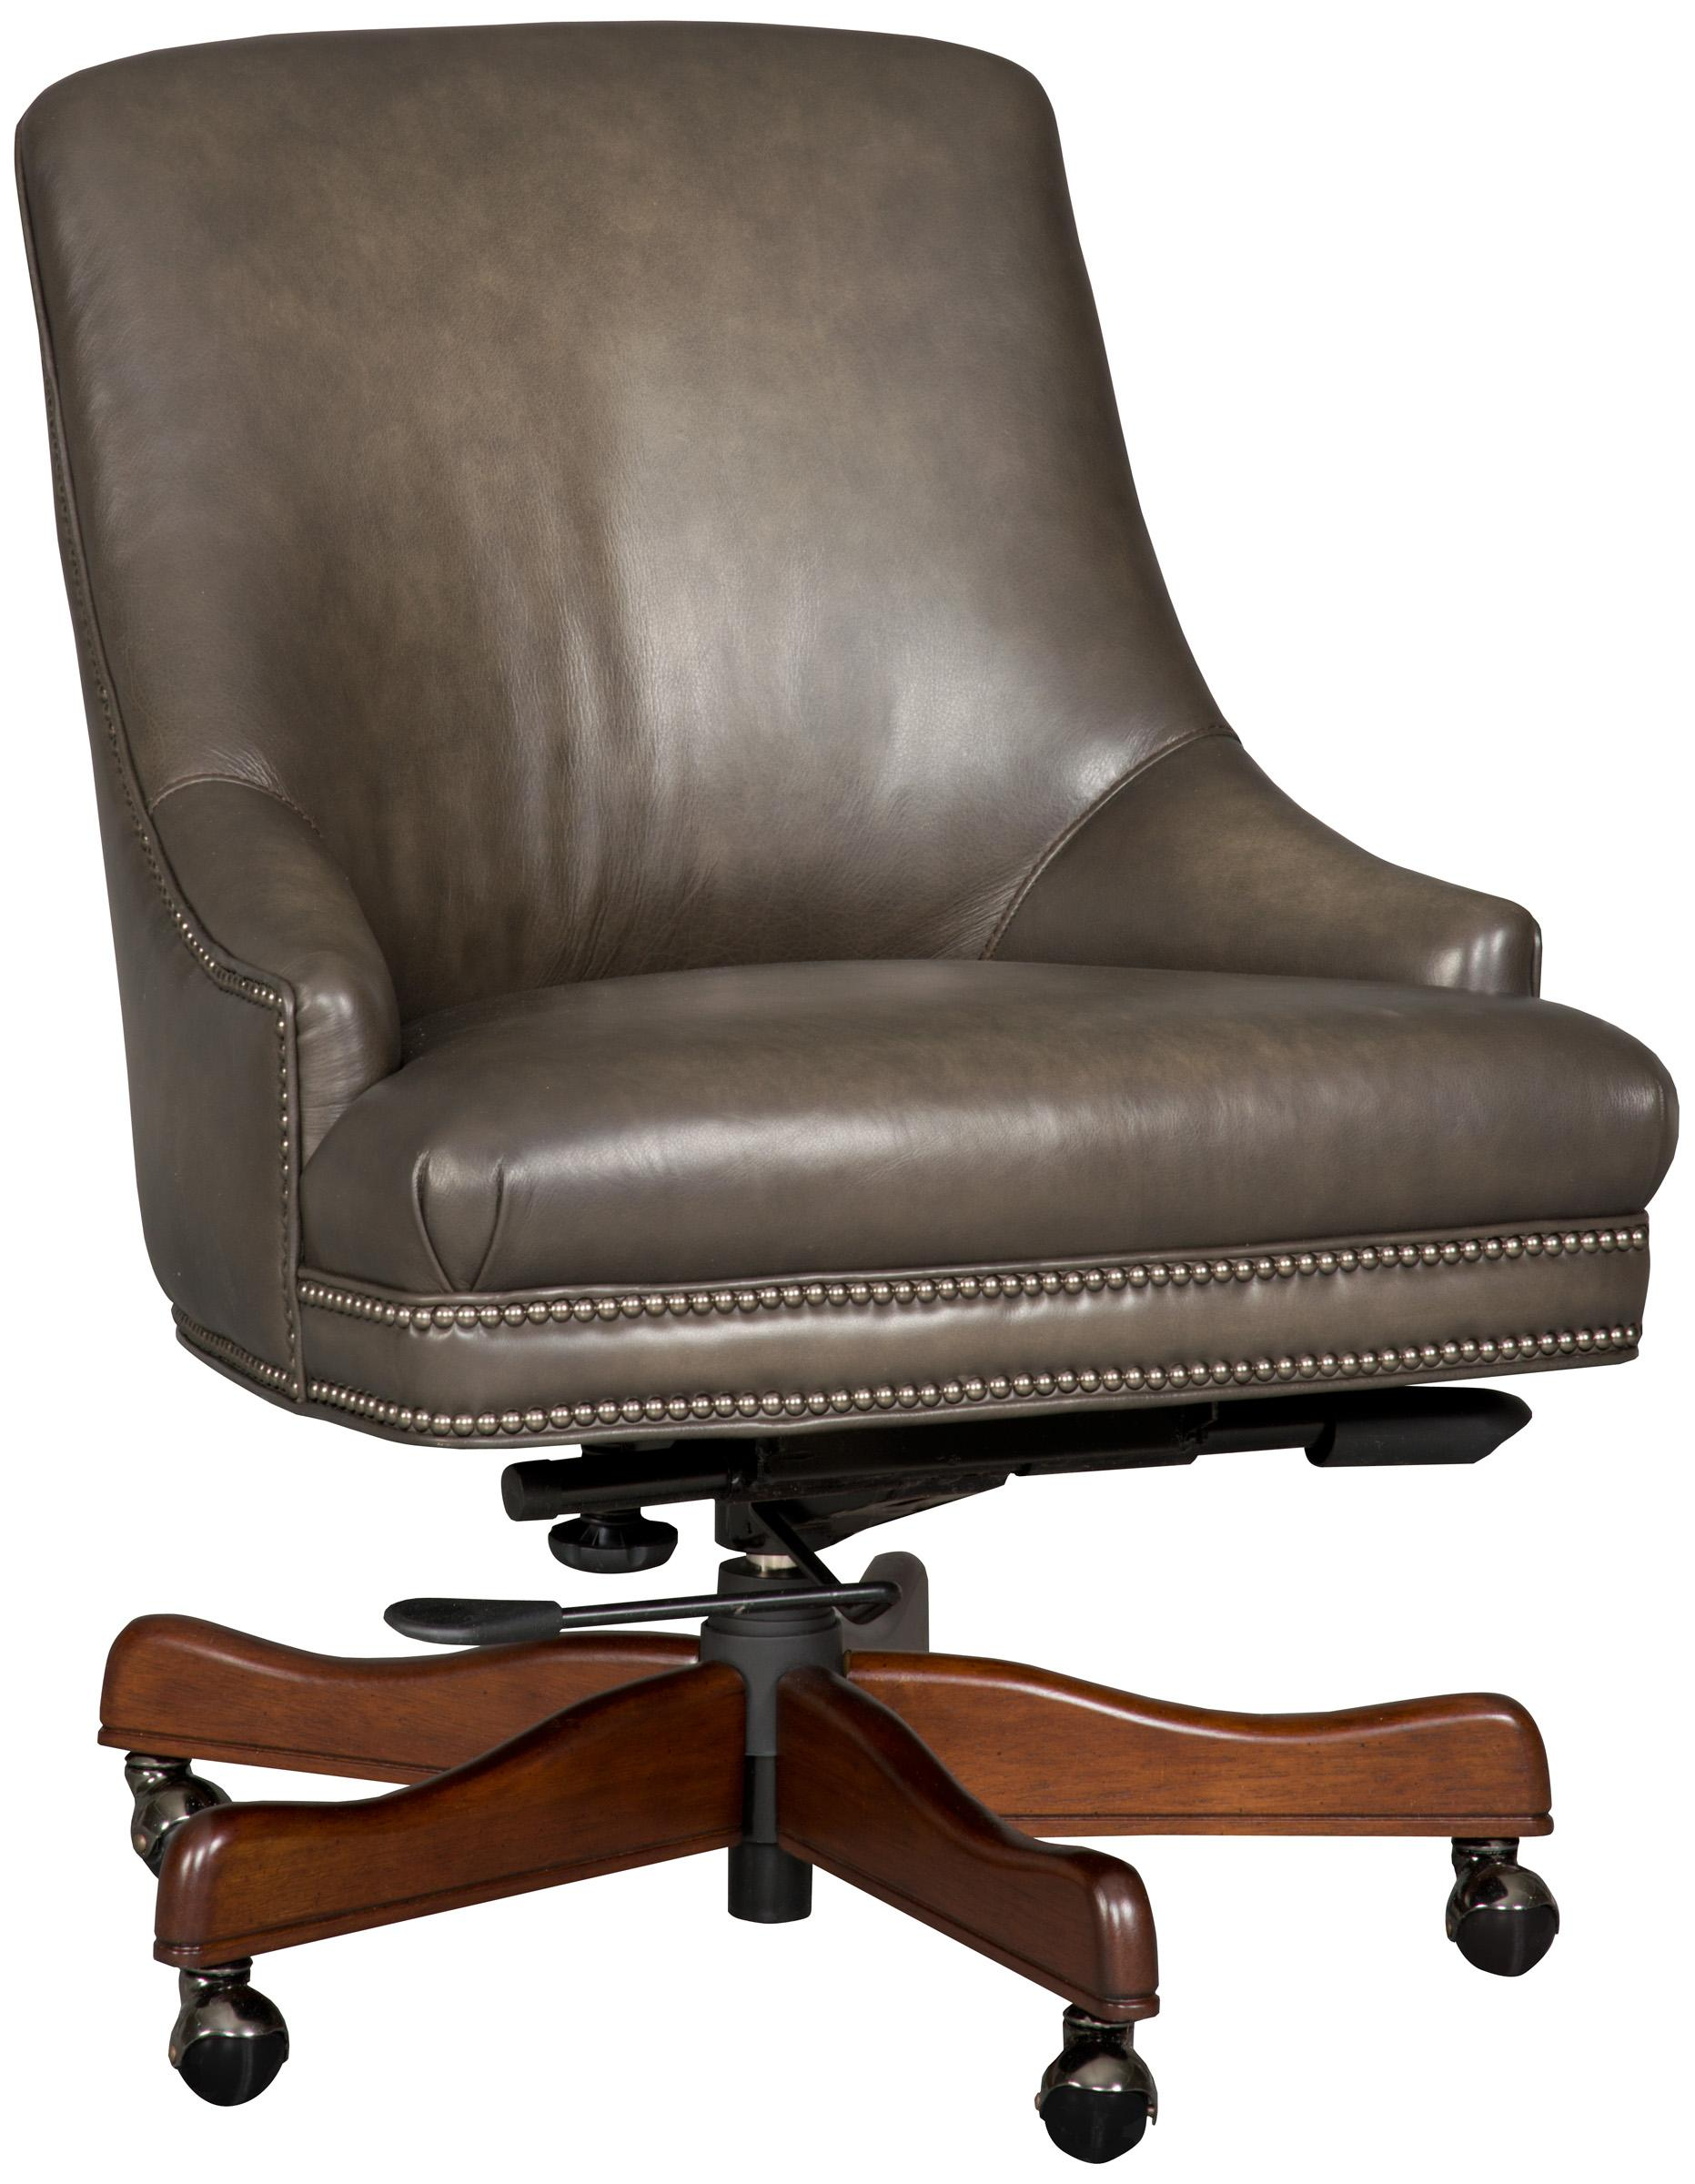 desk chair is too low swing gold coast hooker furniture executive seating swivel tilt